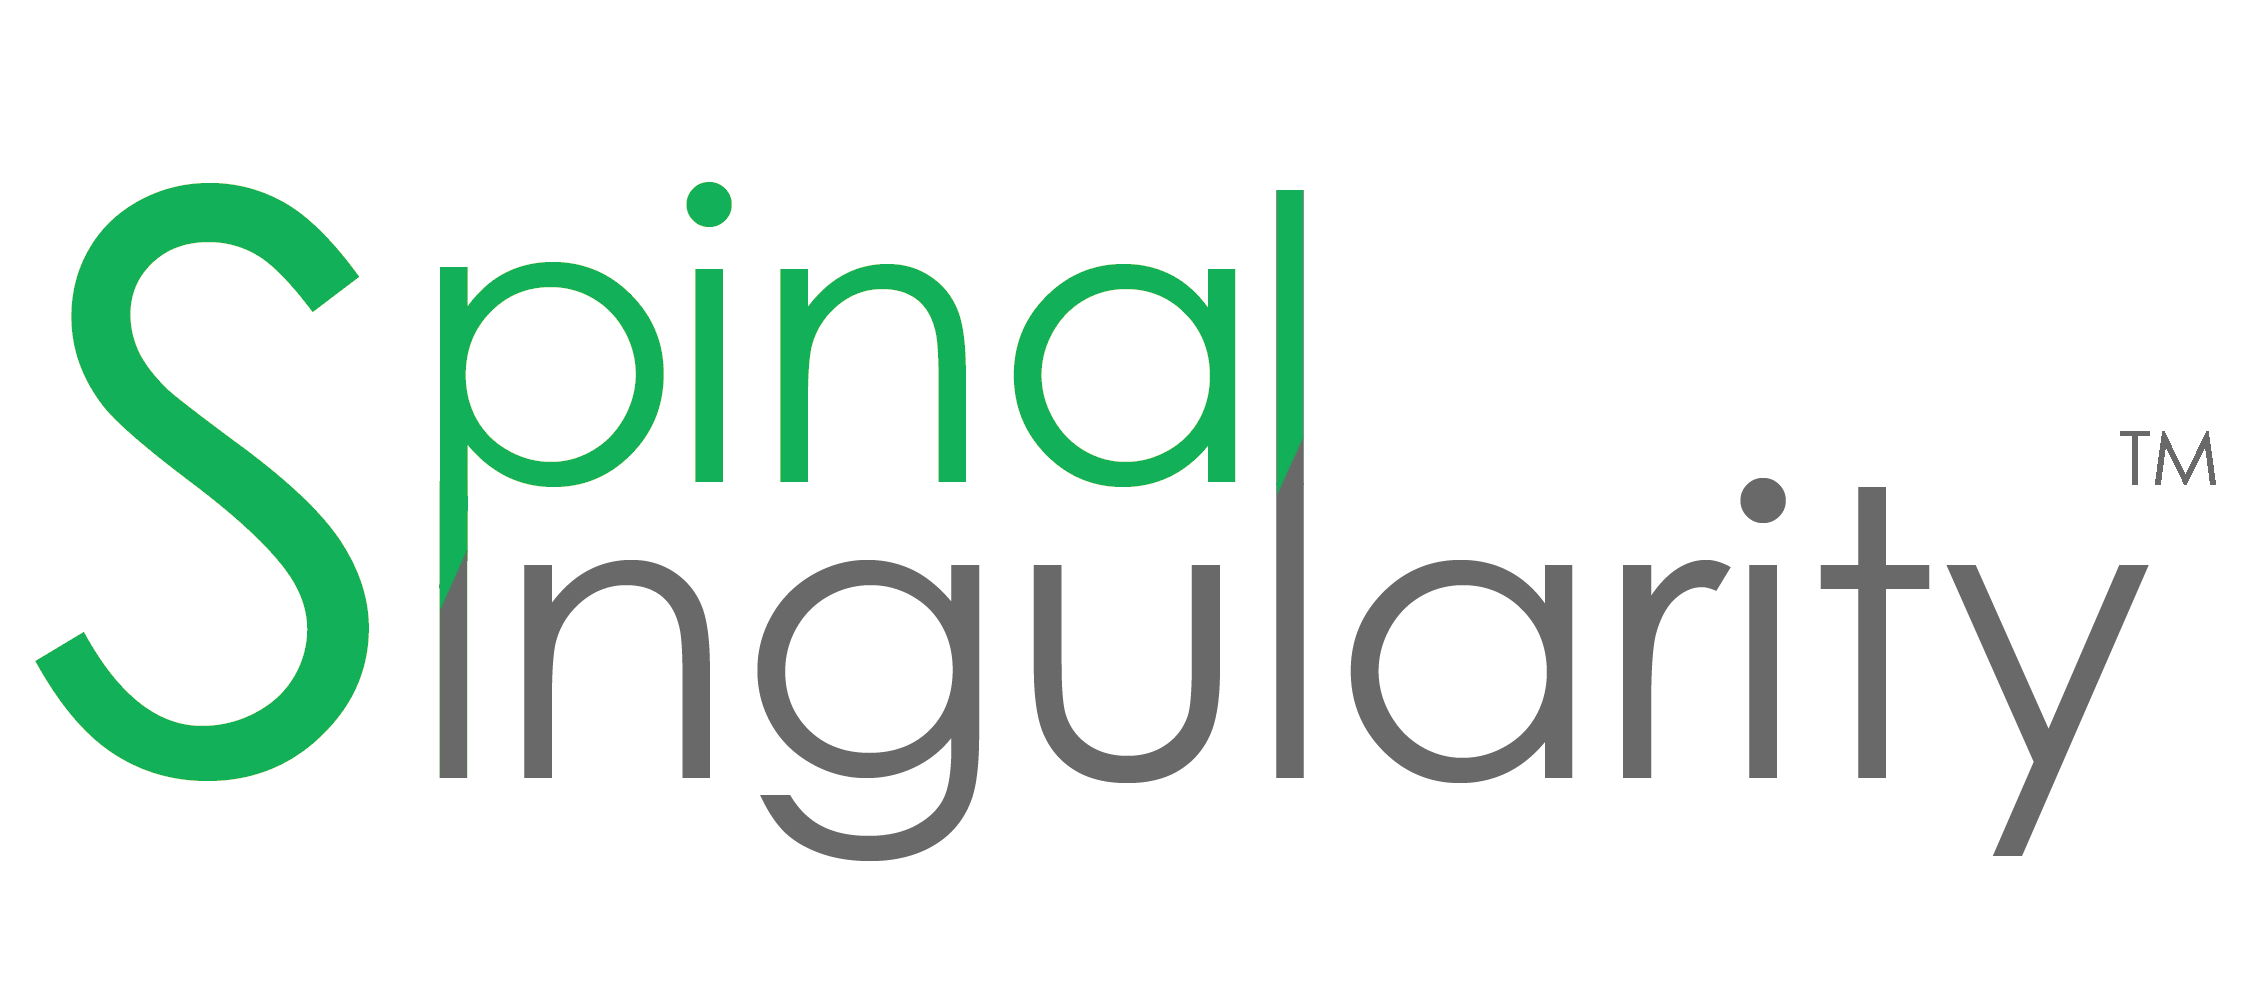 Spinal Singularity Logo TM @2x.jpg